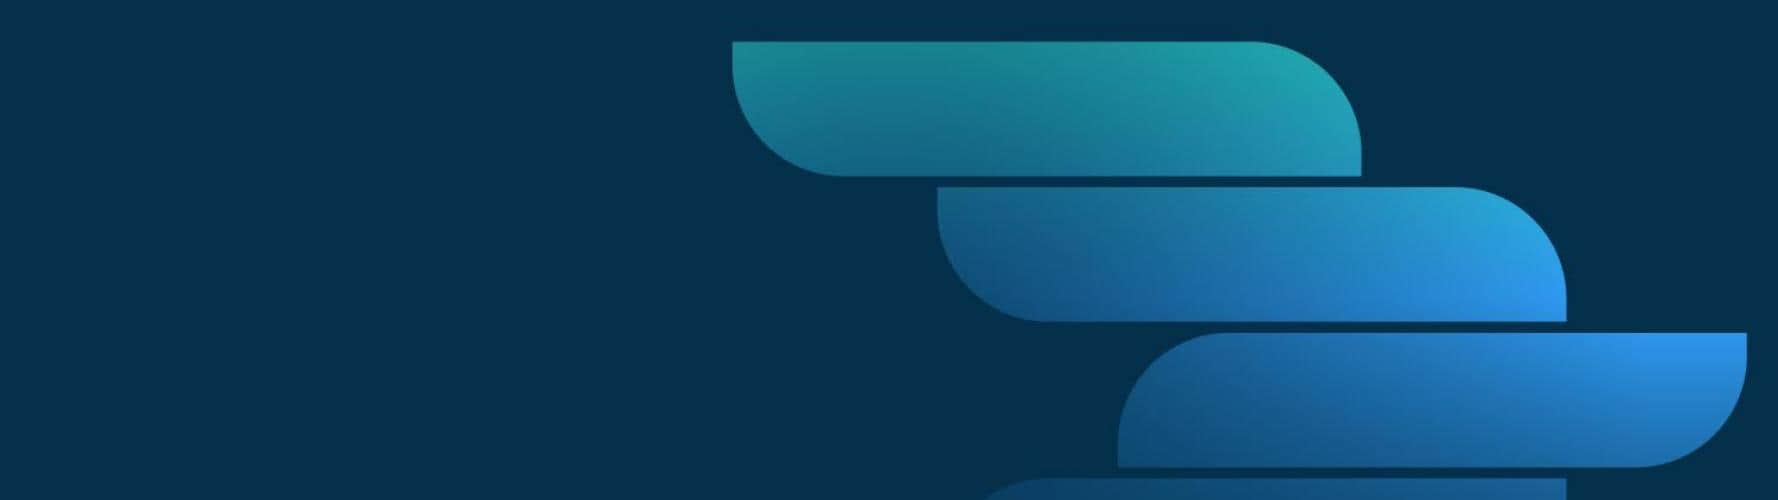 Blue shapes forming arrow on dark blue background